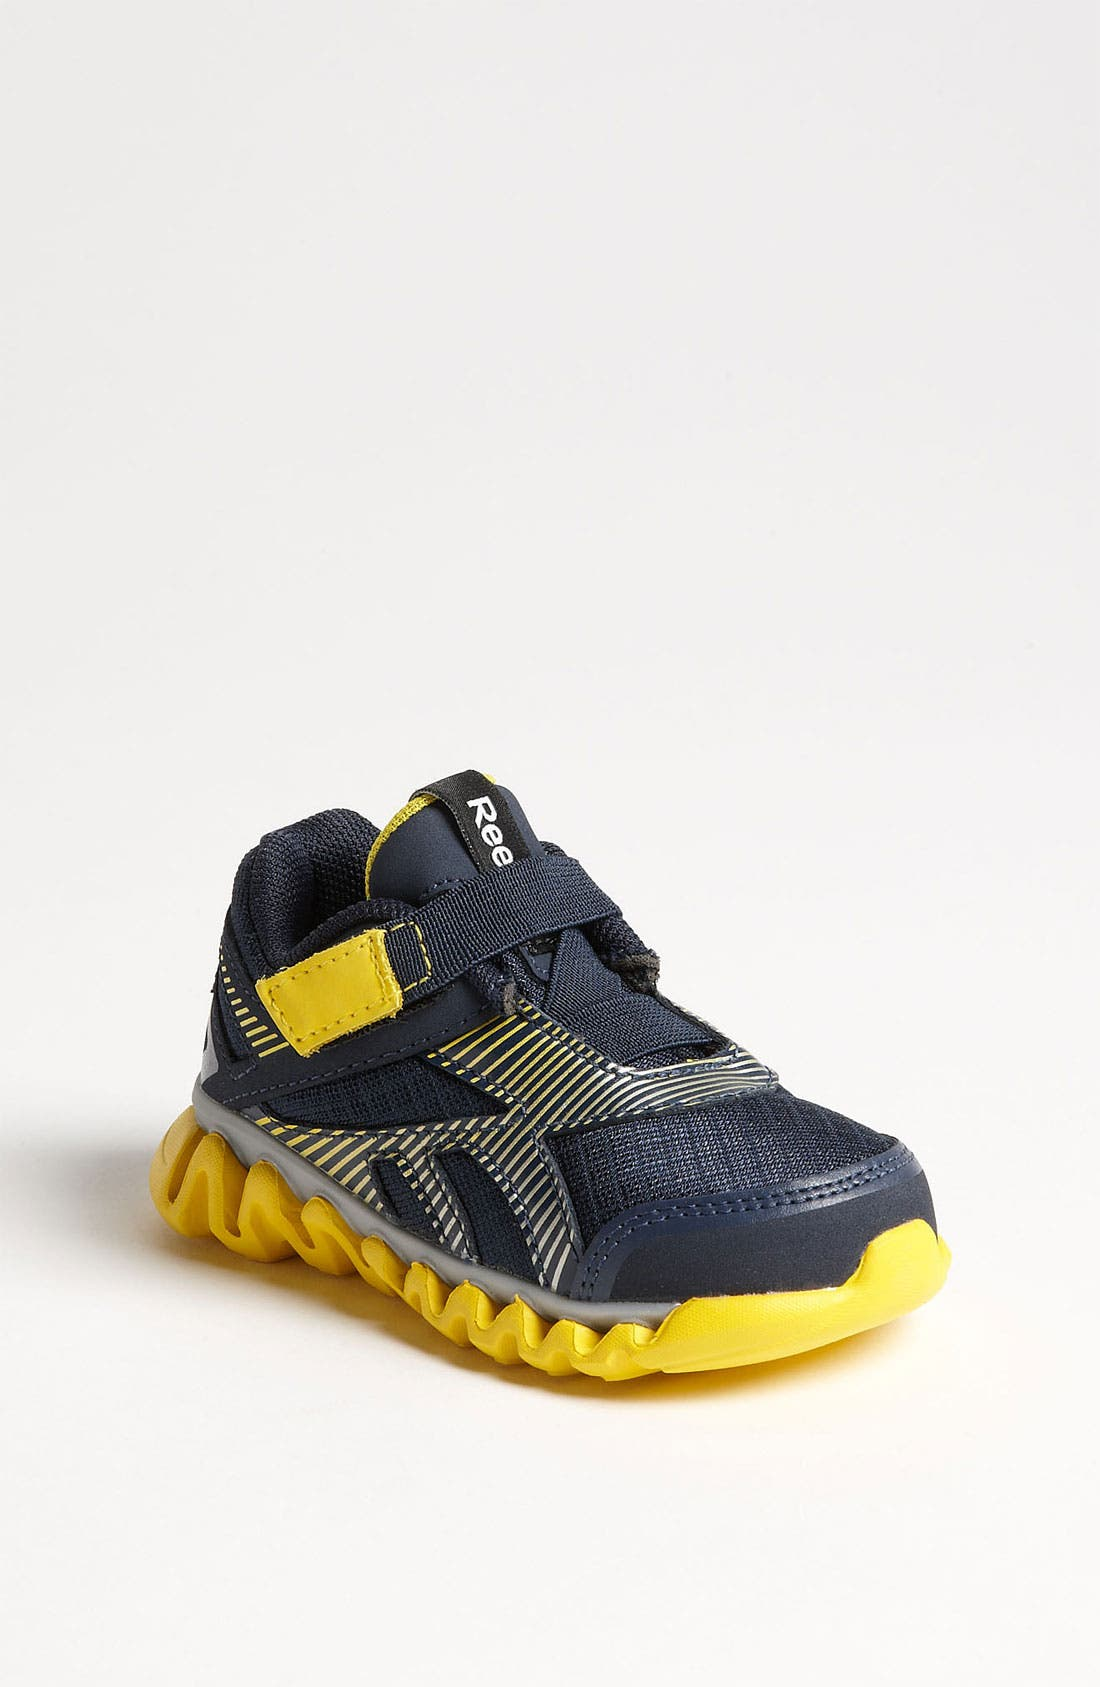 Alternate Image 1 Selected - Reebok 'ZigLite Electrify' Sneaker (Baby, Walker & Toddler)